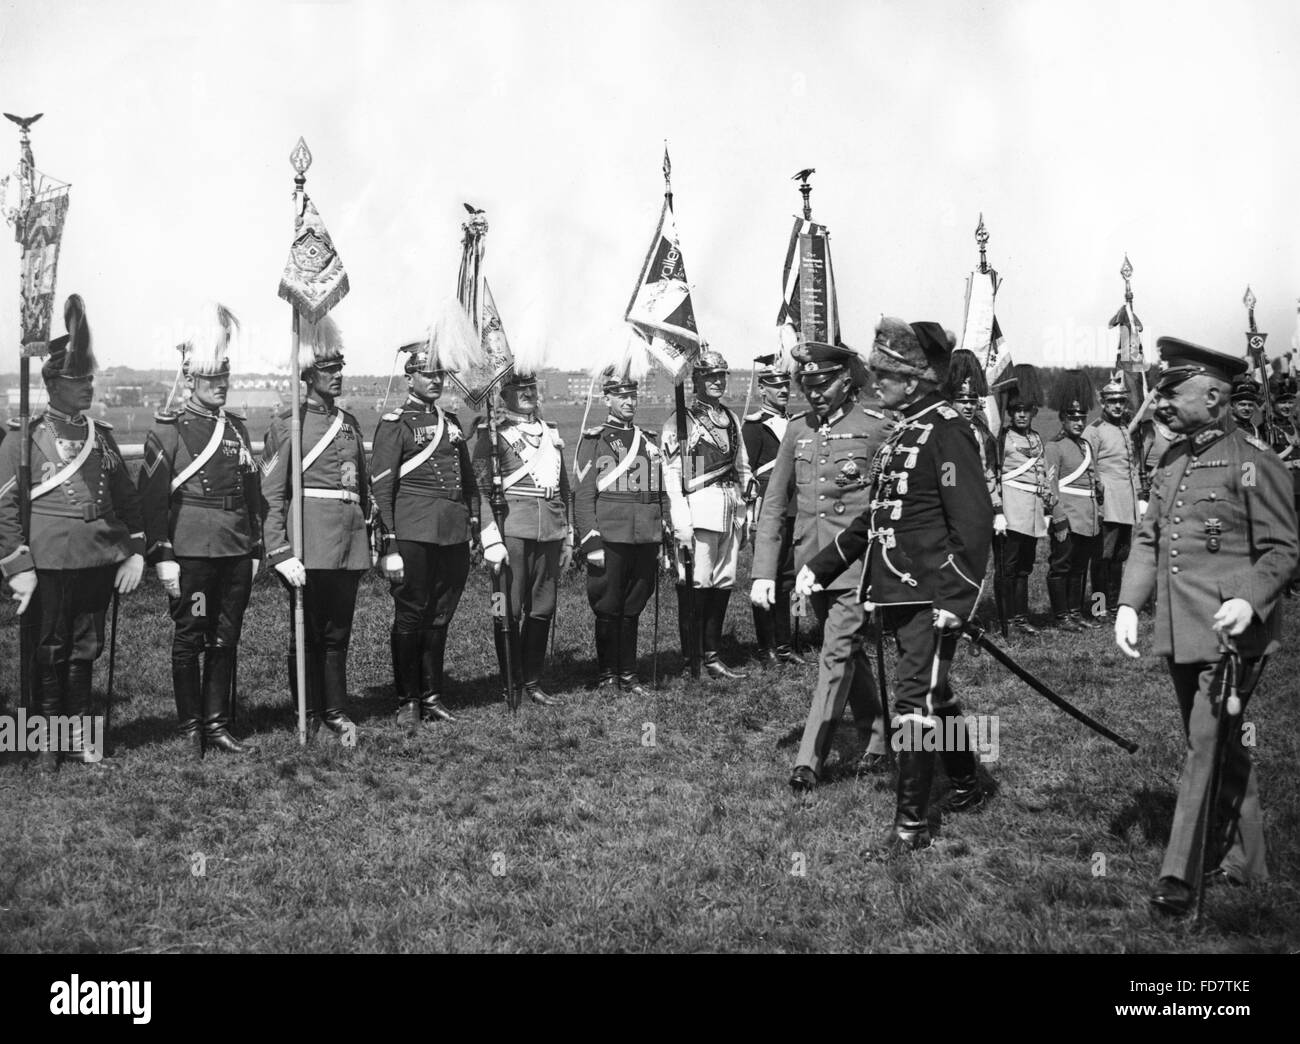 The 5th Waffentag of the German Cavalry in Hamburg, 1935 - Stock Image